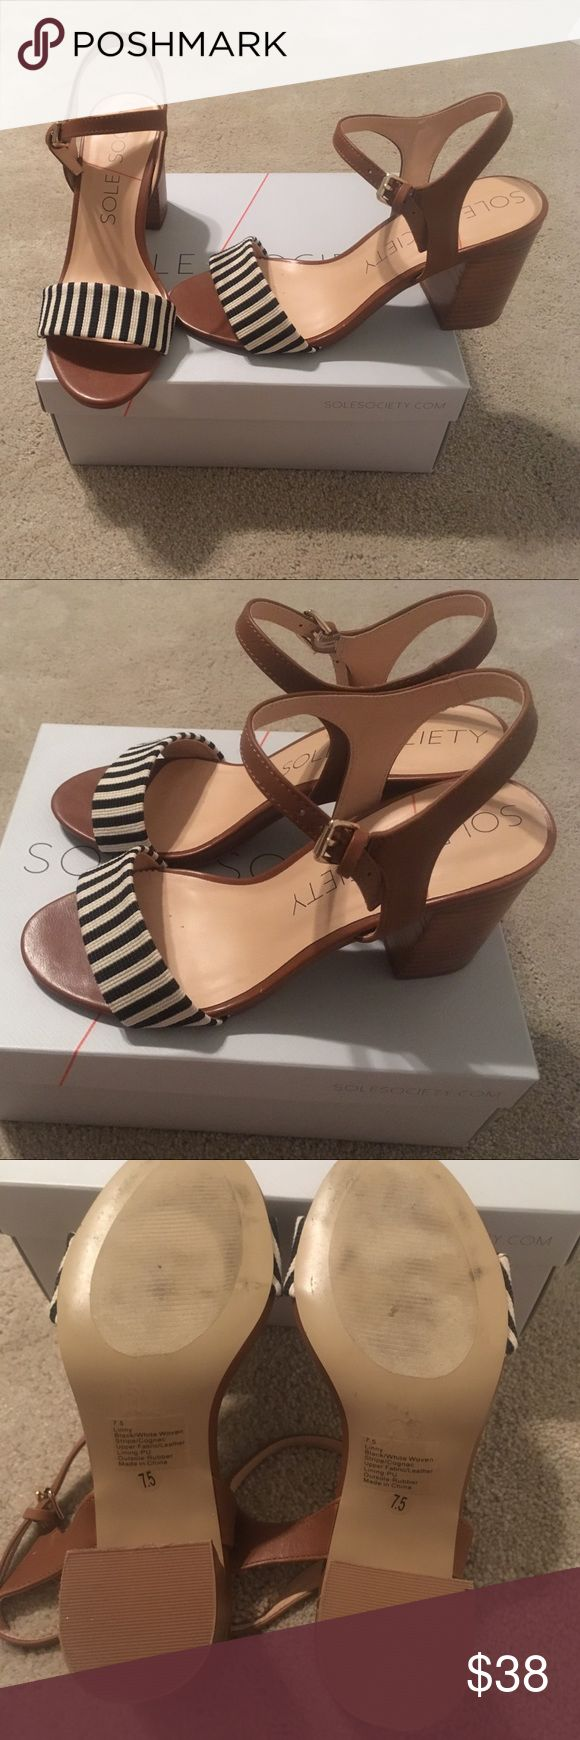 NIB Sole Society Sandals size 7.5 I've only worn these around the house, new in box sole society heels. These nautical strappy Sandals are perfect for the beach or general summer wear. Sole Society Shoes